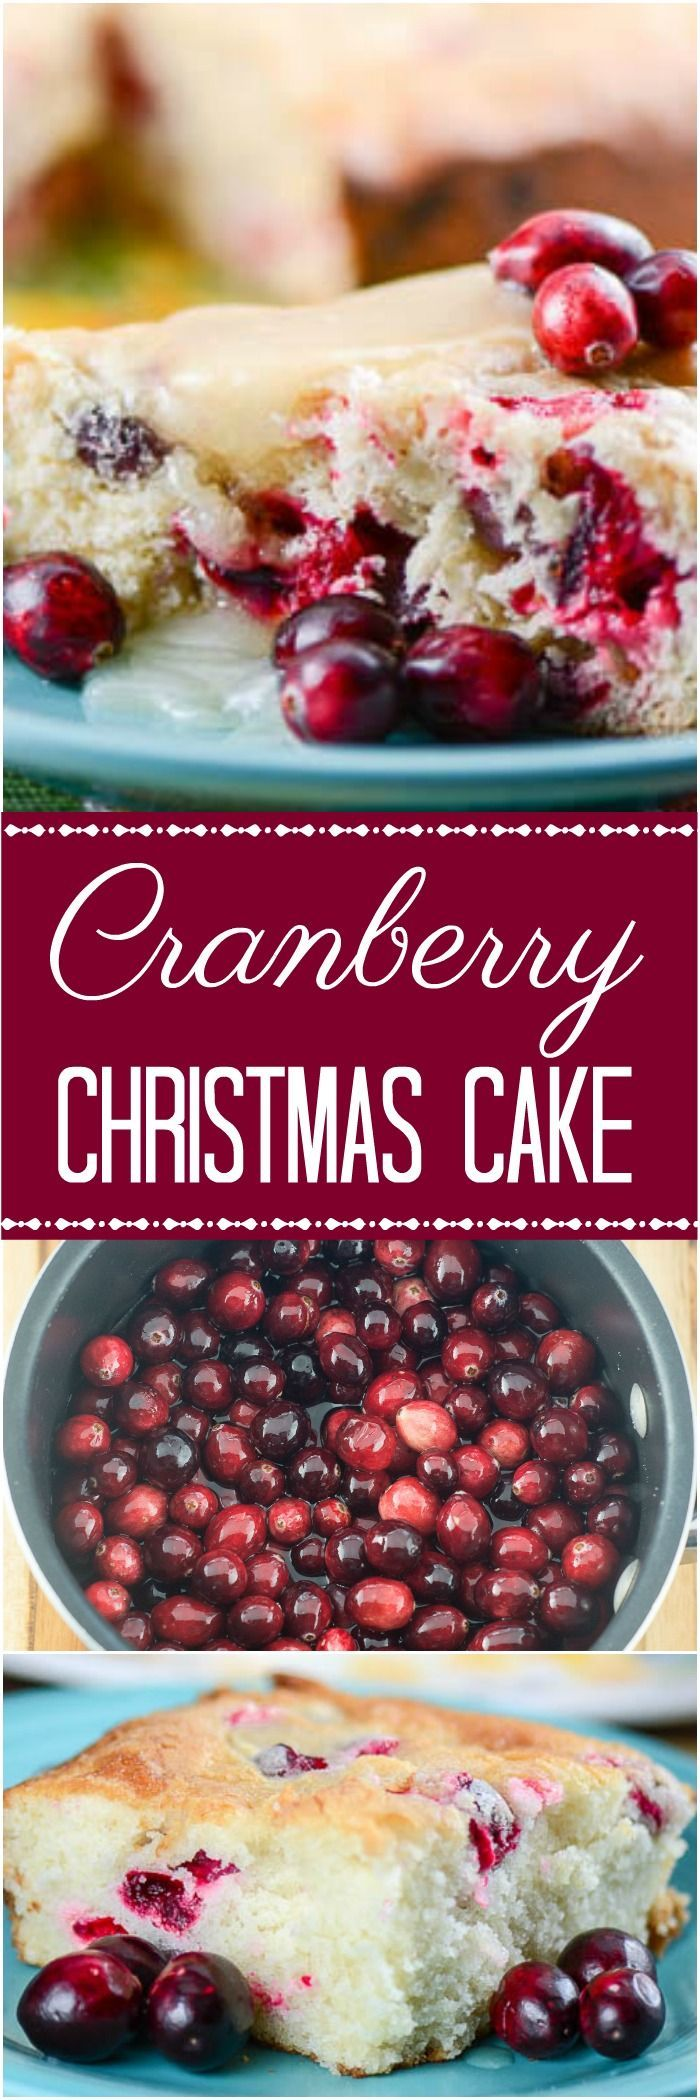 Homemade Fresh Cranberry Christmas Cake is an easy